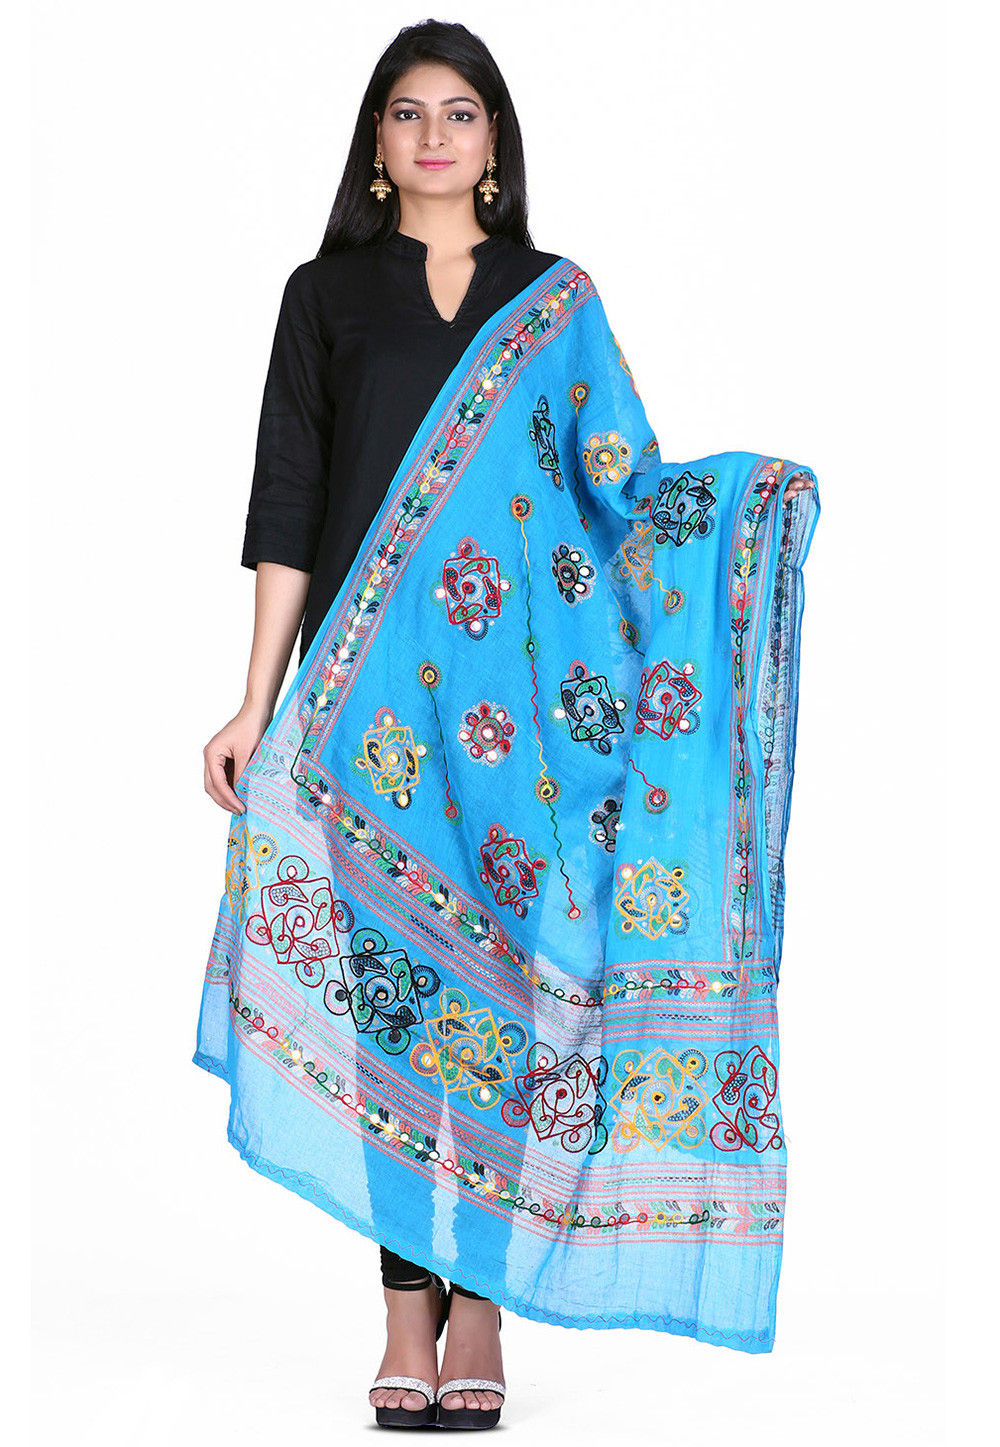 Kantha Embroidered Cotton Dupatta in Sky Blue